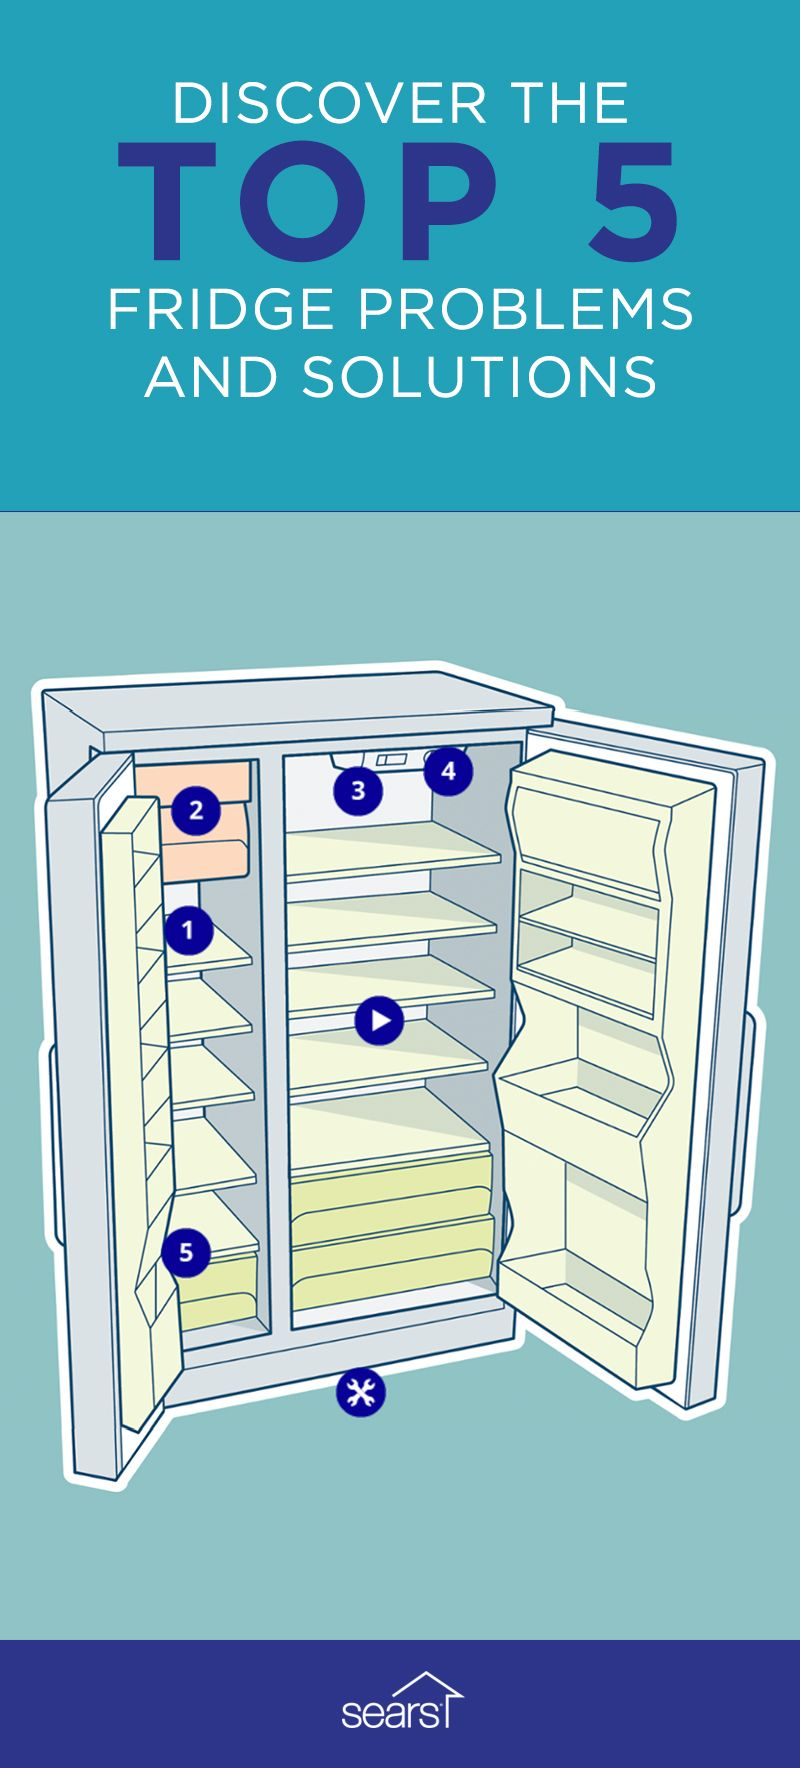 Many Of The Most Common Refrigerator Problems Are Issues You Can